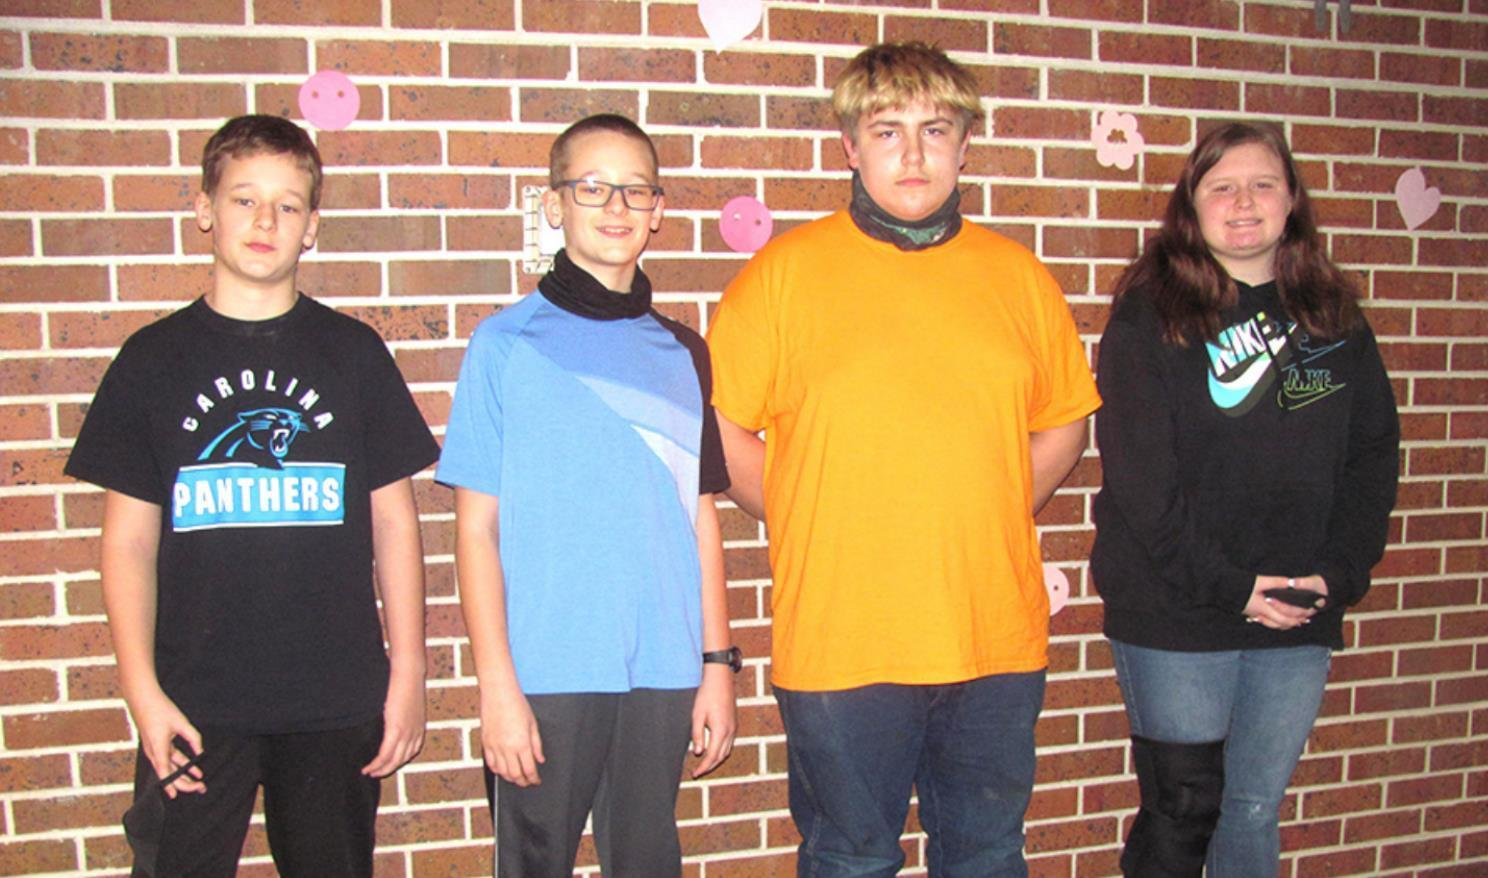 Taking part and placing in the Hall County Spelling Bee were Centura students, left to right, Caleb Hostetler, Samuel Hostetler, James Maul, and Brionna Lowe. (–courtesy photo)